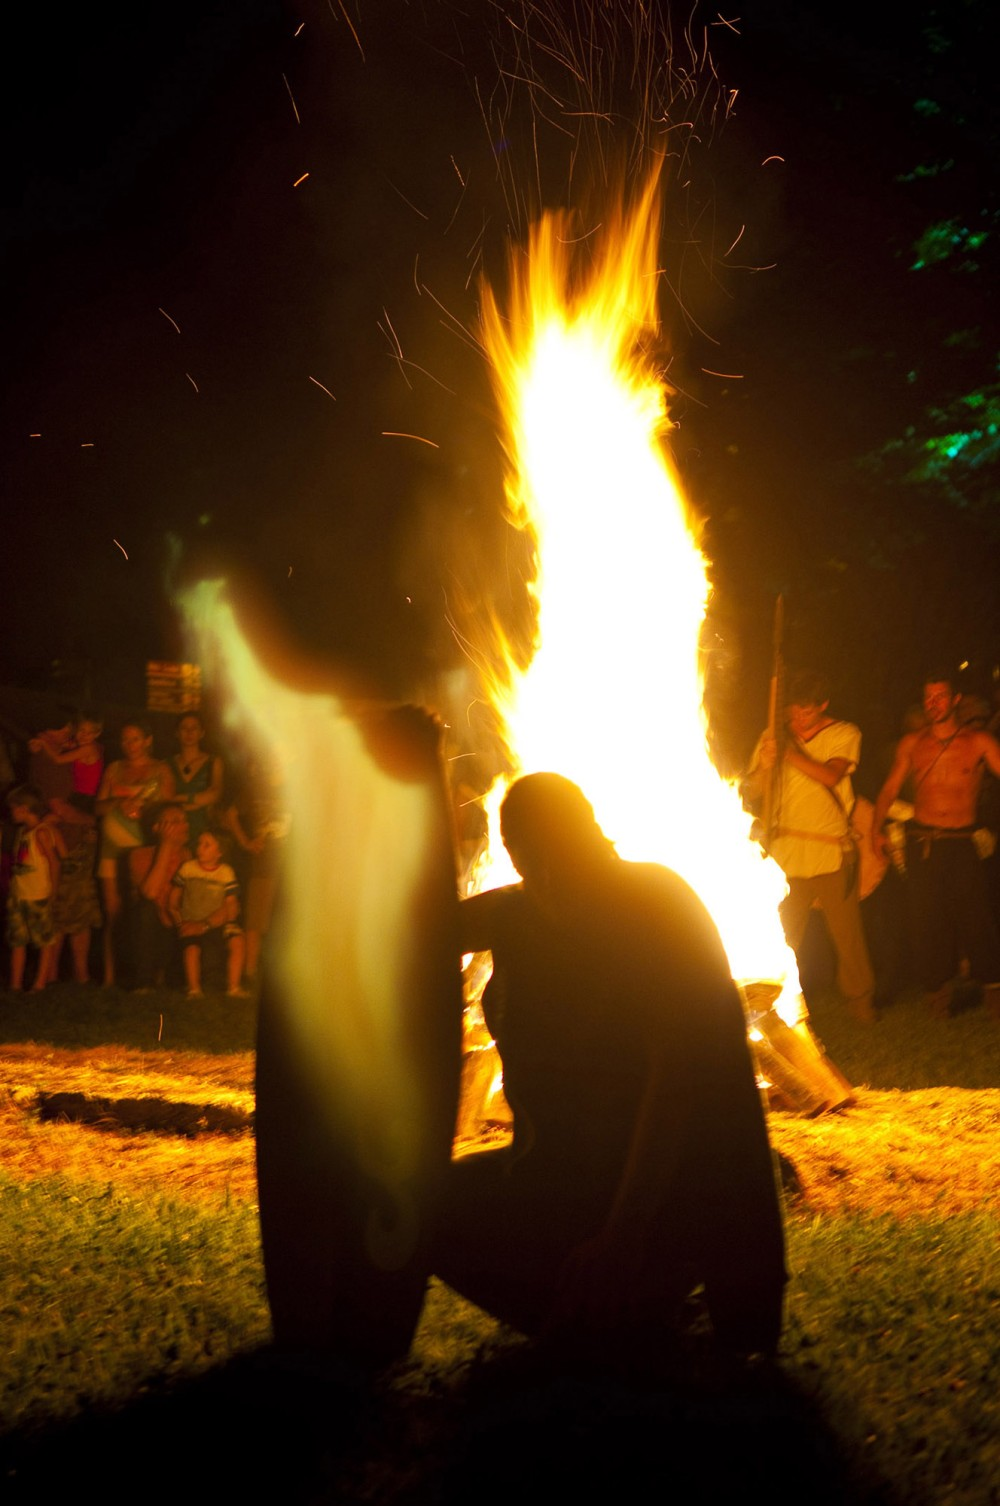 The ritual fire of the Celtic god Belenus kicks off the re-enactment. – © Gianluca Baronchelli